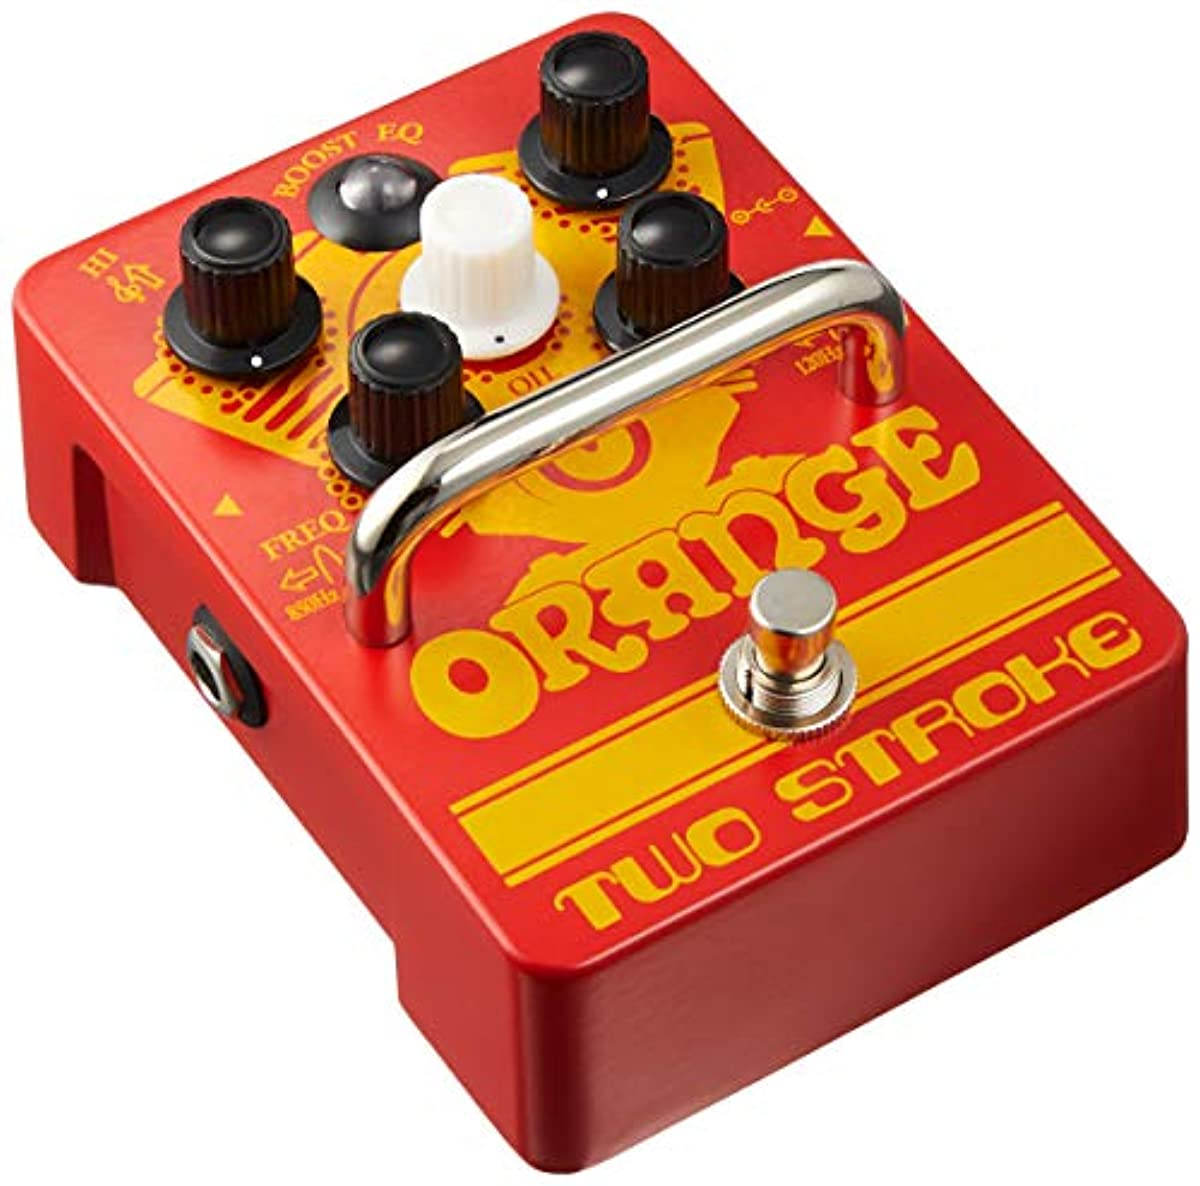 [해외] ORANGE TWO STROKE: BOOST EQ GUITAR EFFECTS PEDAL 이퀄라이저 부착 부스터 TWO STROKE